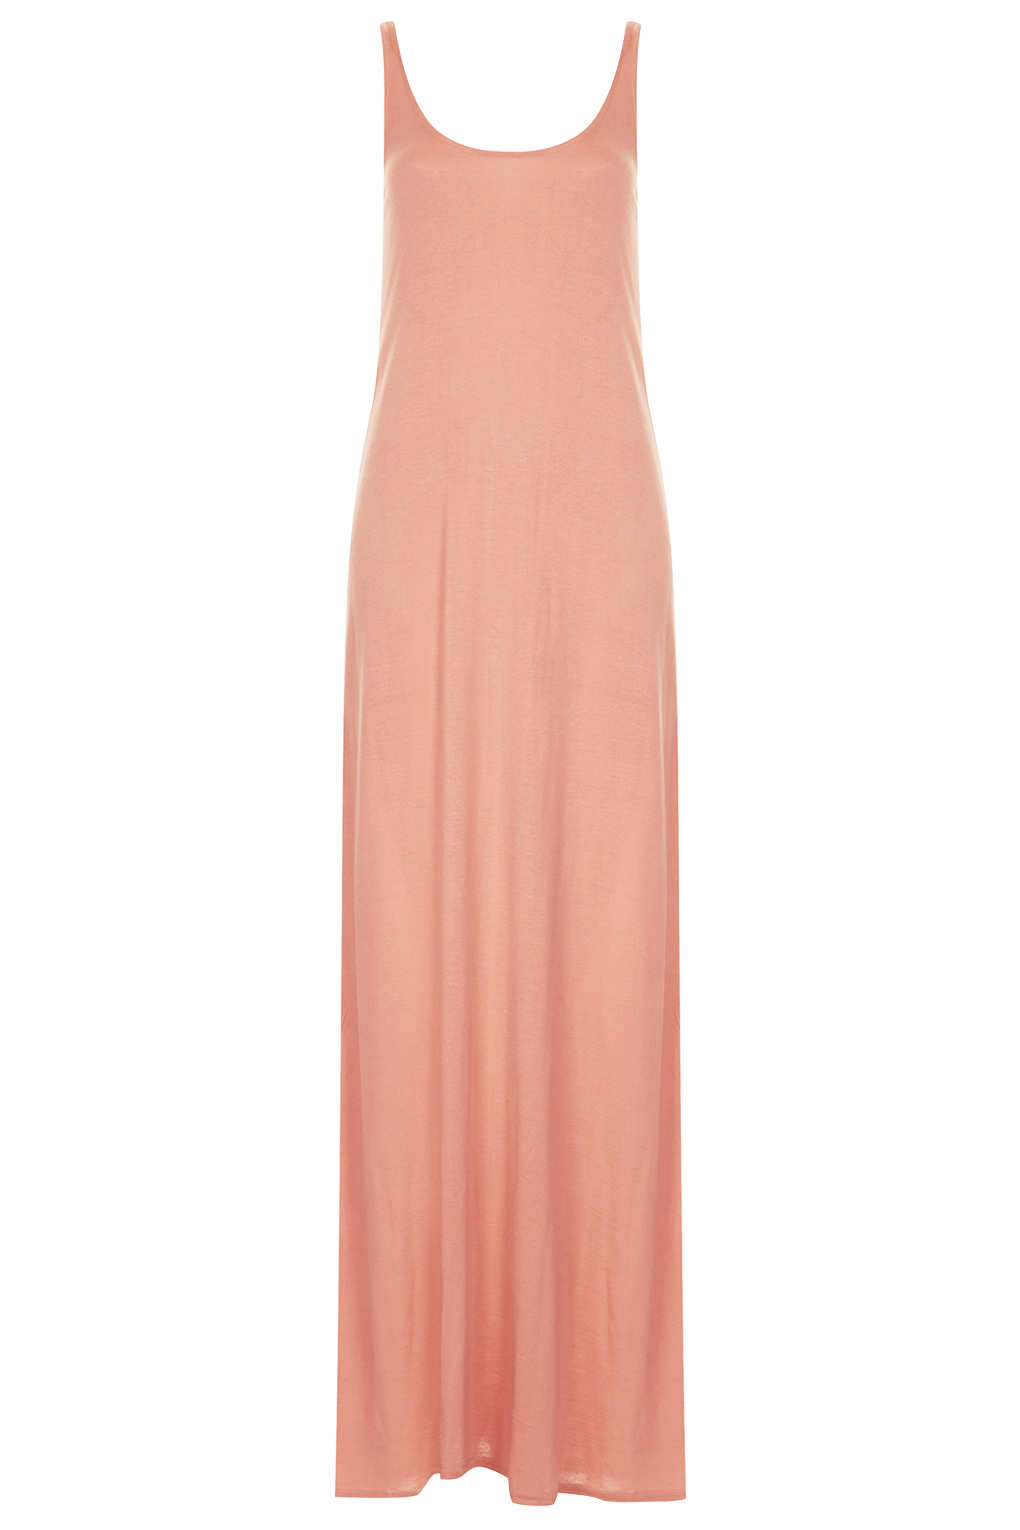 Topshop Plain Low Back Maxi Dress in Pink  Lyst